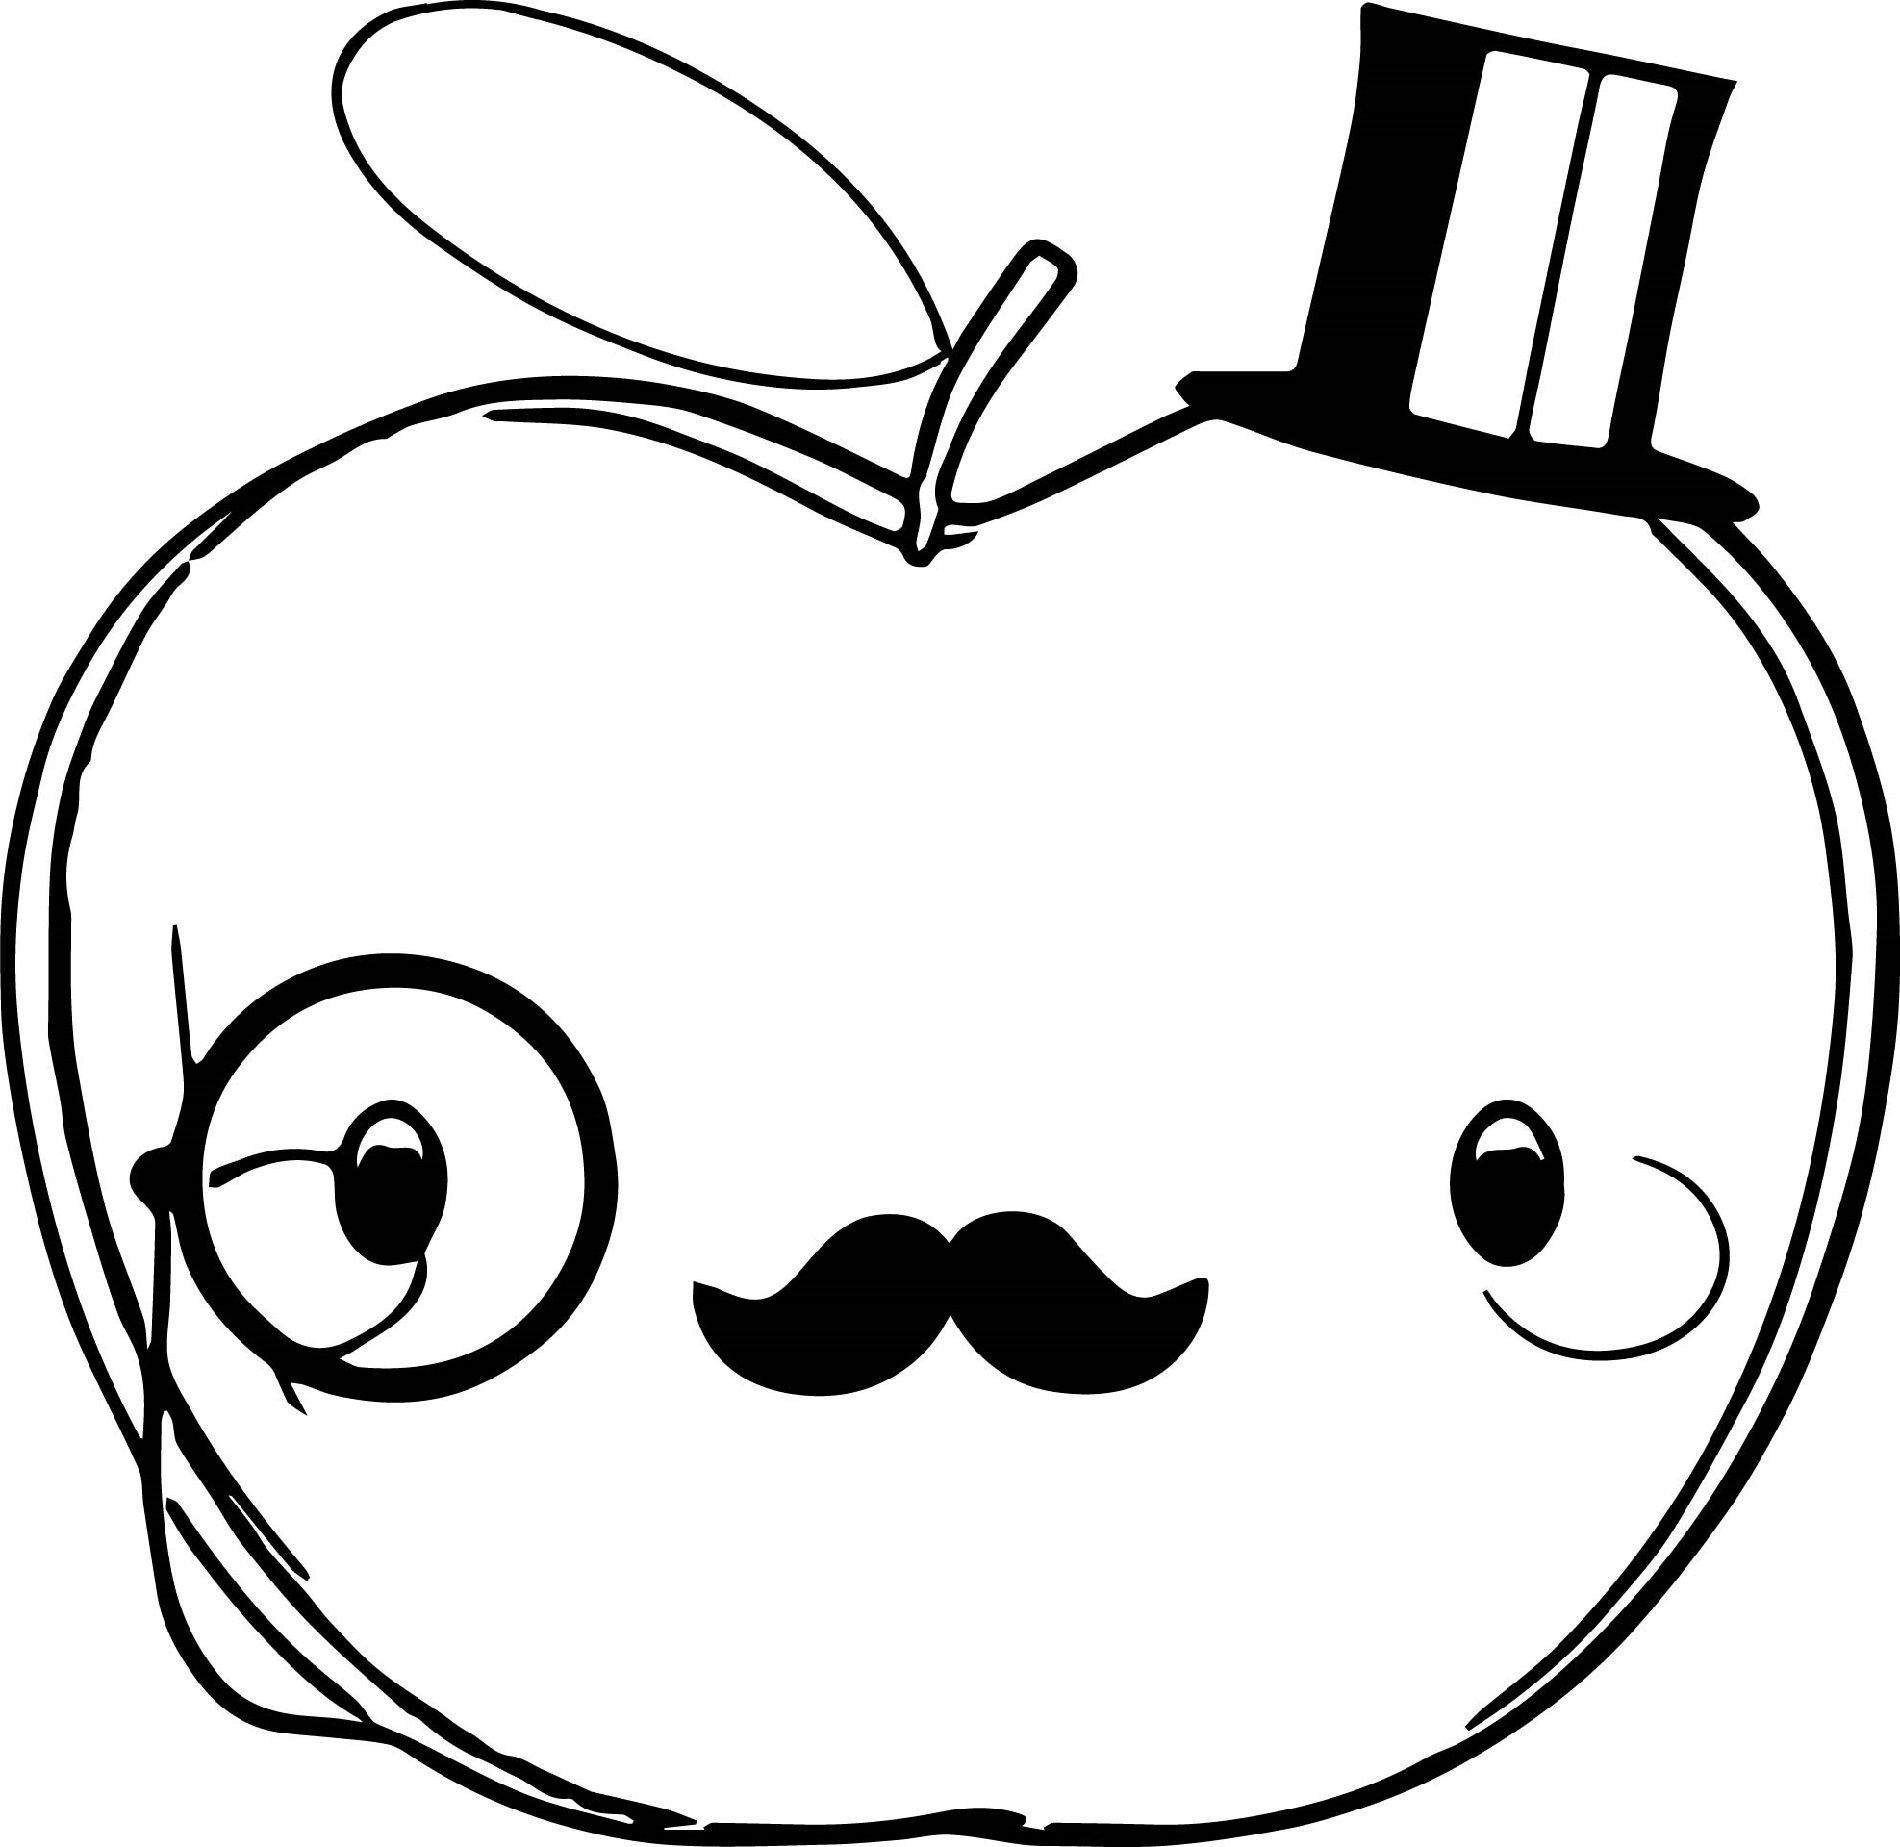 coloring picture of an apple happy to be scrappy an apple for the teacher apple picture coloring of an